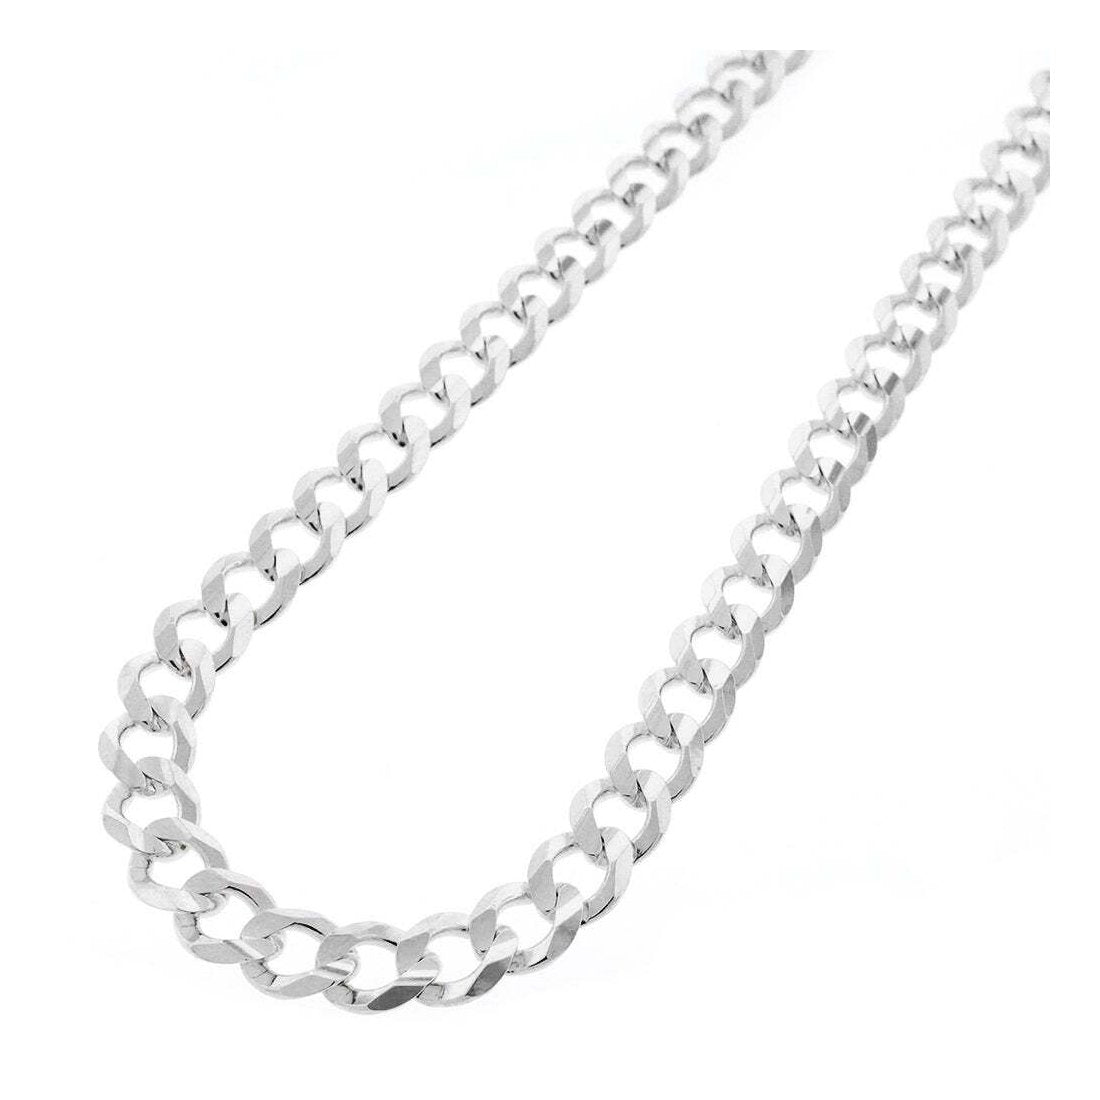 "6.4MM 160 Flat Pave Curb Chain .925 Solid Sterling Silver Sizes ""8-30"" Inches"